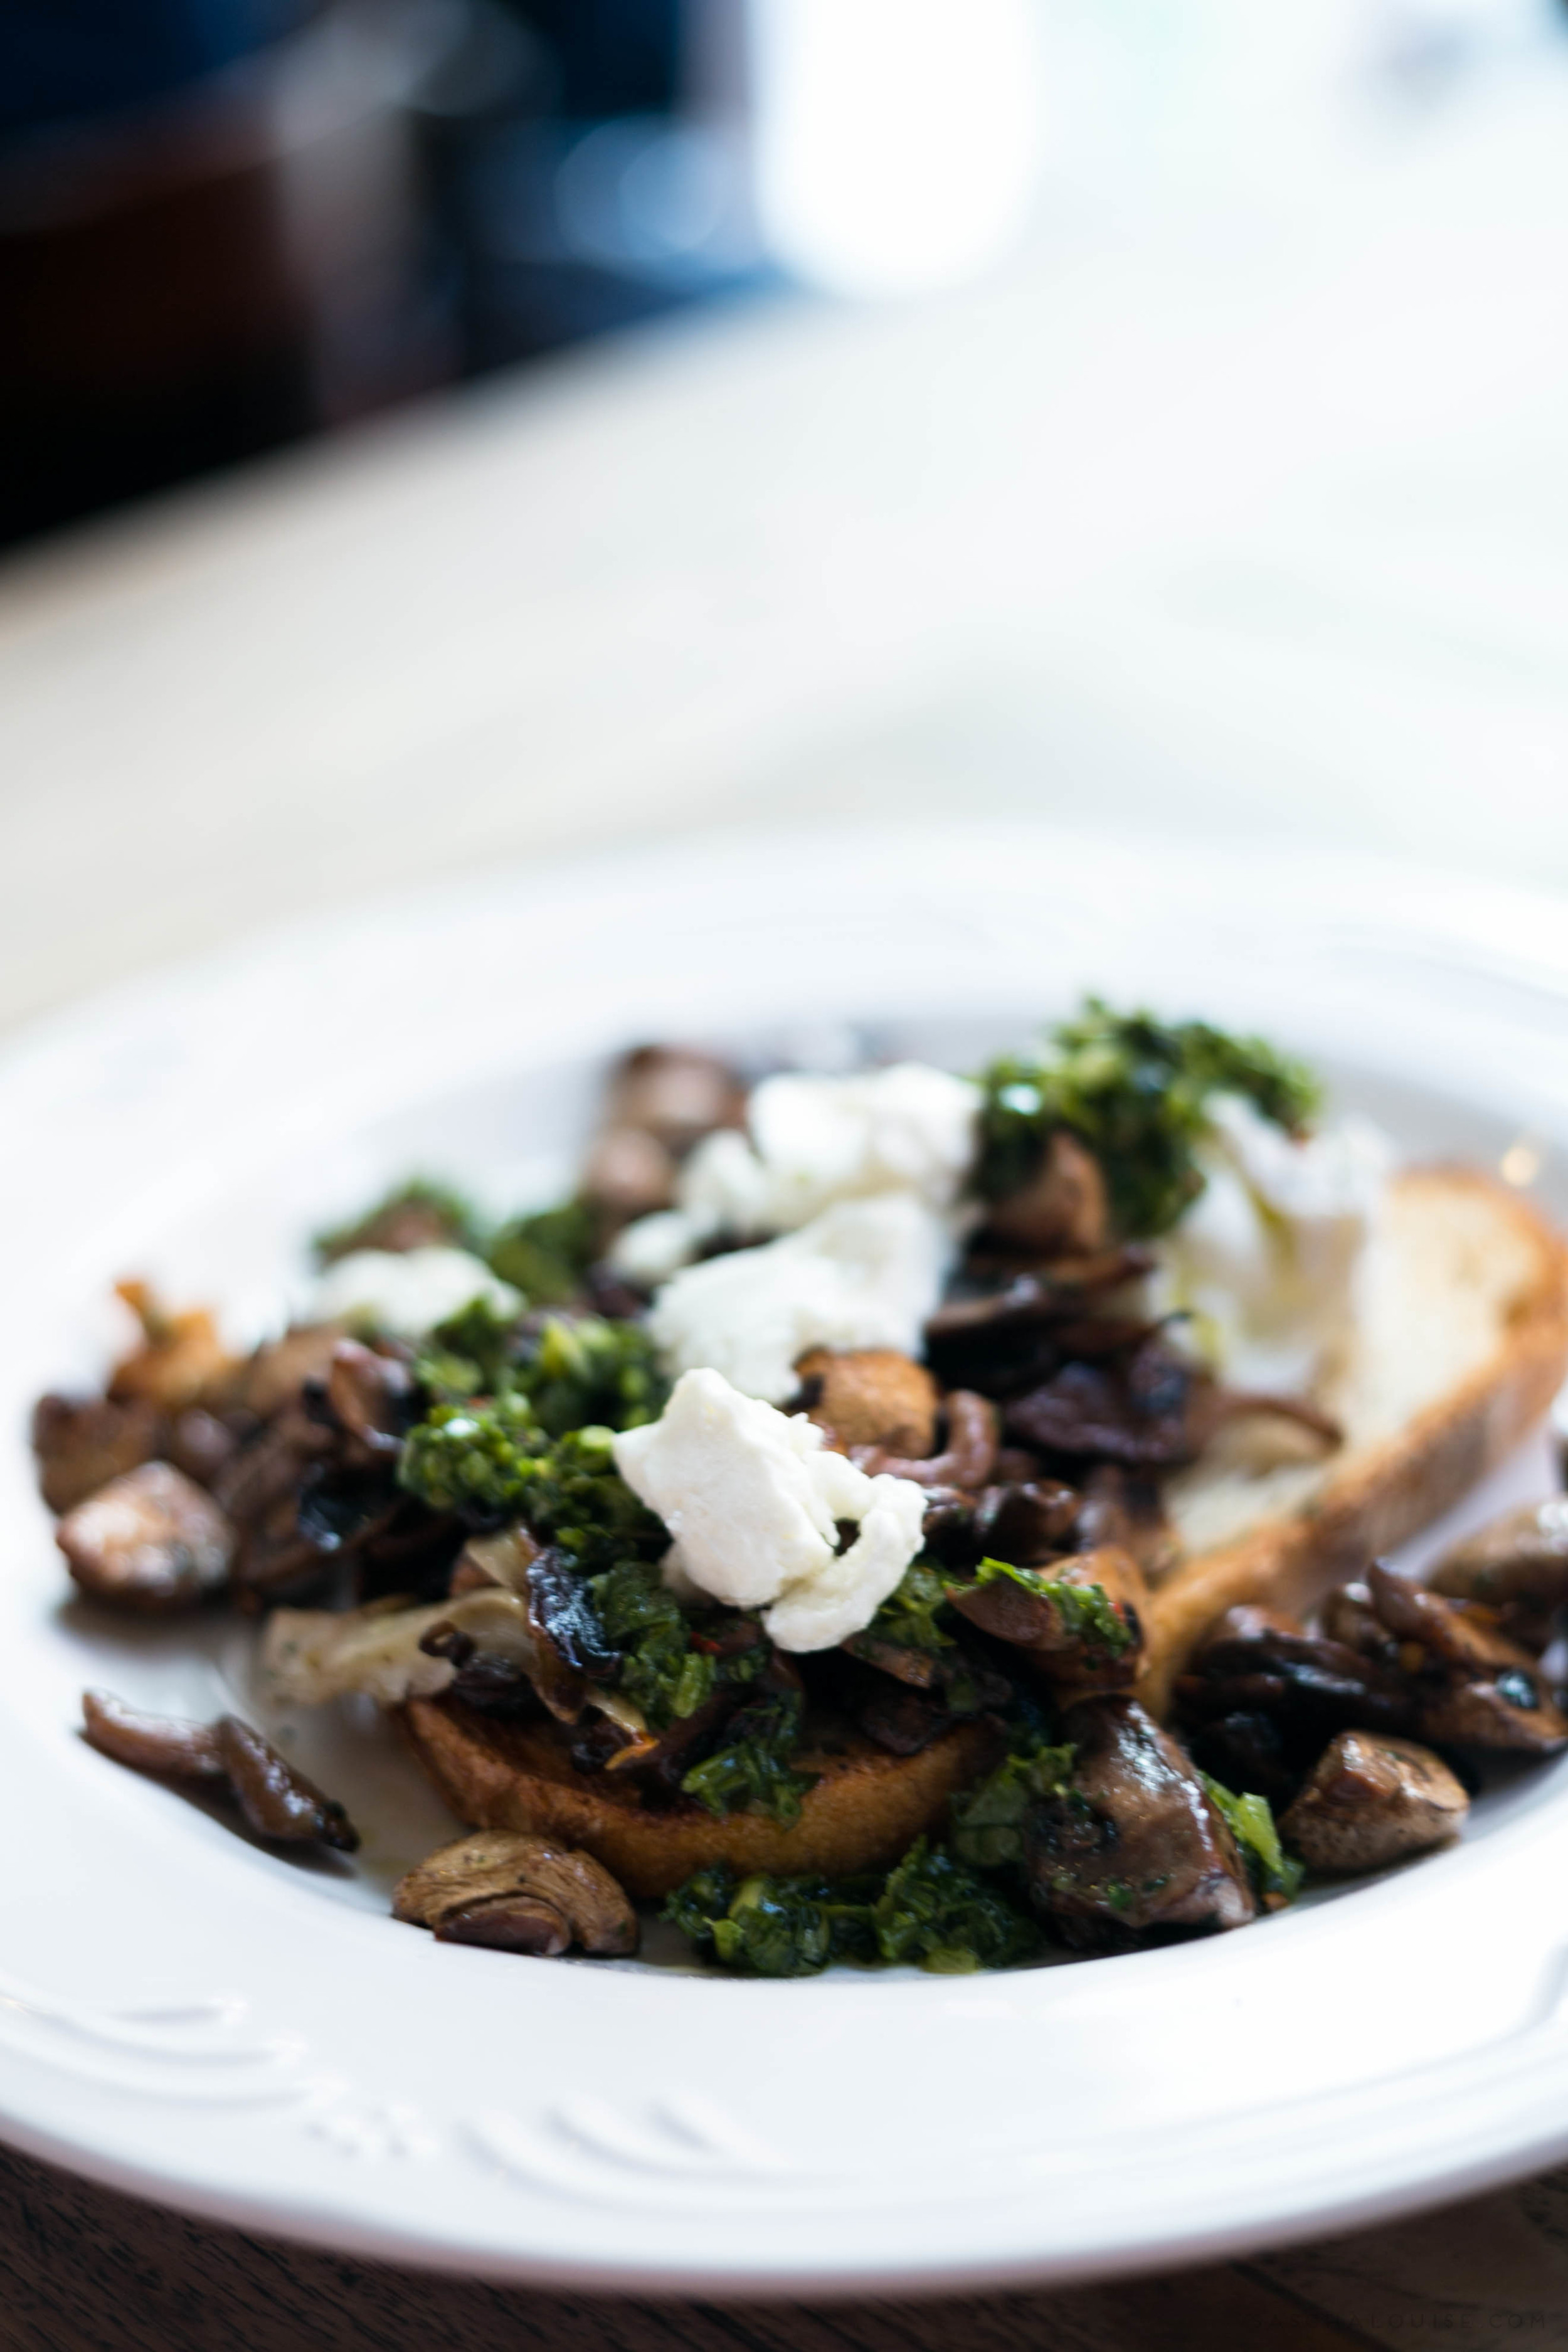 Sautéed Mushrooms on sourdough : Chez Dre